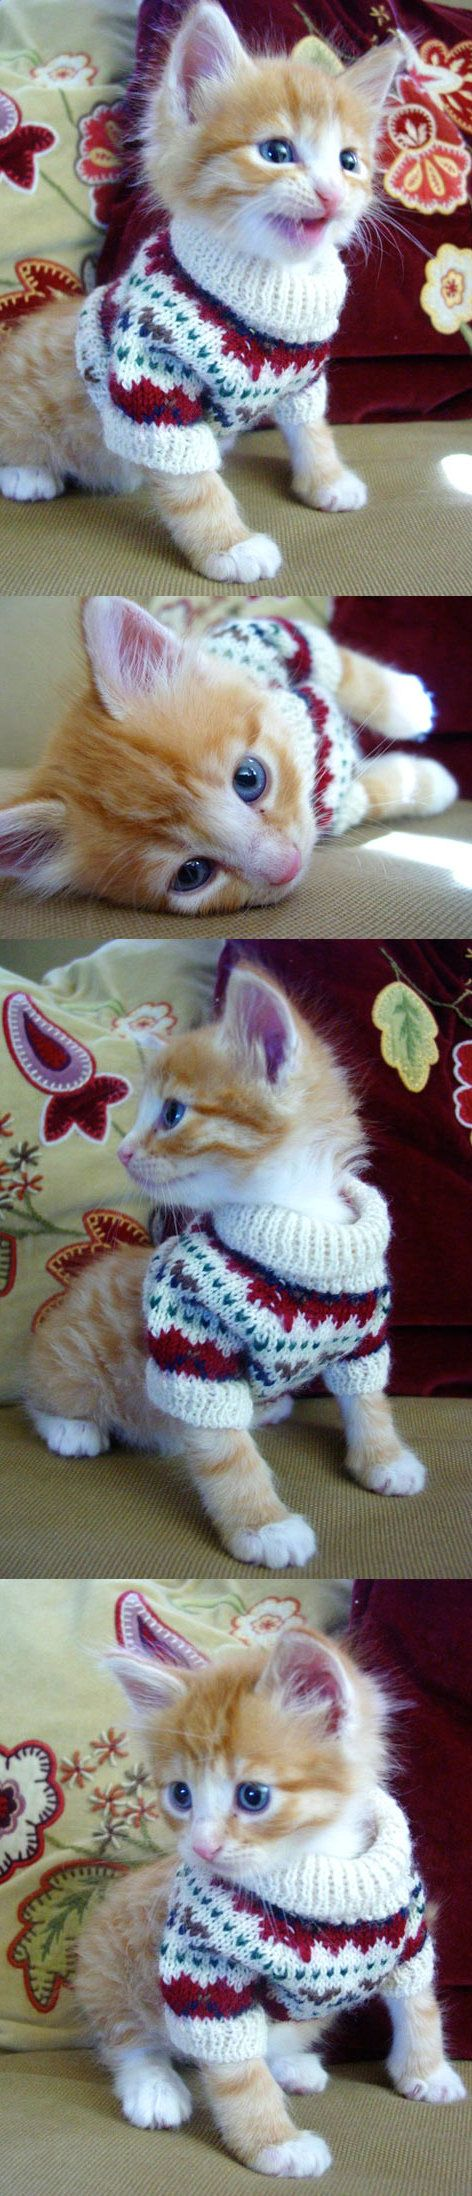 Kitty In a Sweater. Making my day as we speak.